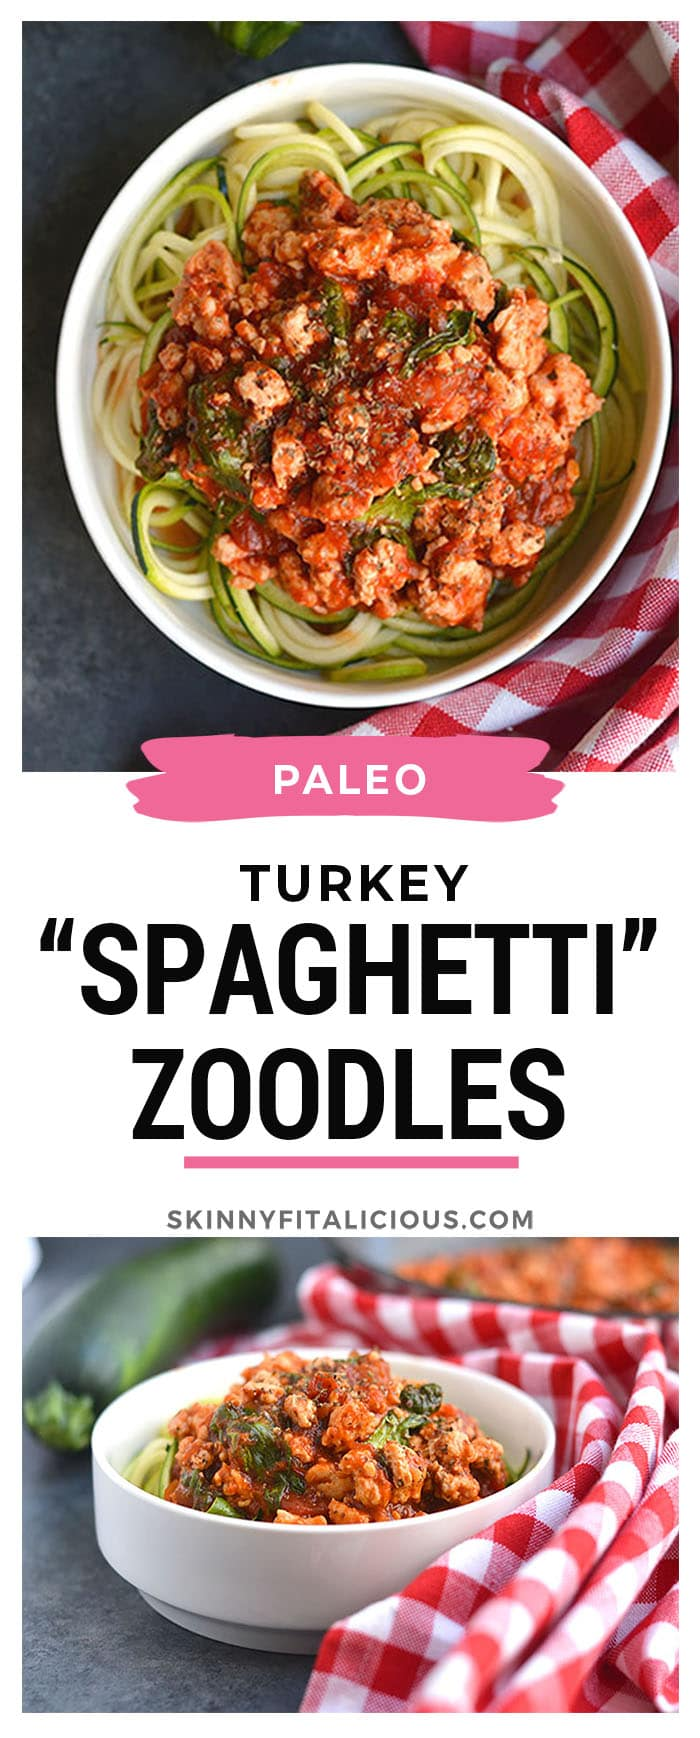 This Turkey Spaghetti Zoodles is pasta without the pasta! A SUPER simple one pan dinner that's low calorie, low carb, Paleo, gluten free and takes just 10 minutes to make. This will soon be your go-to week night dinner! Paleo + Gluten Free + Low Calorie